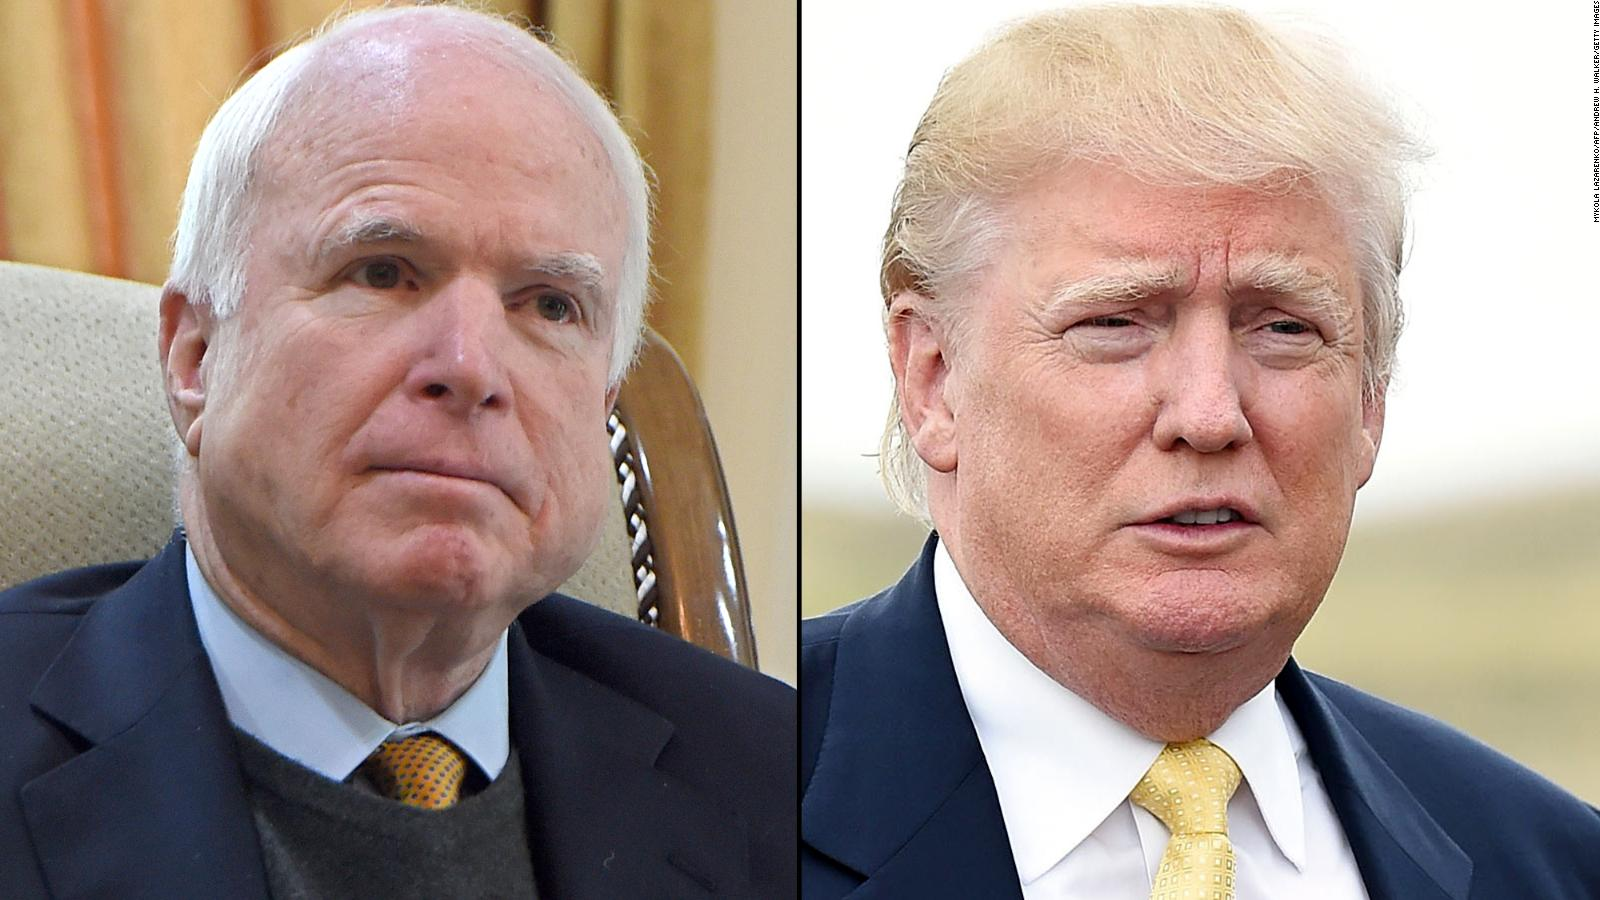 Trump and McCain's never-ending back and forth - CNN Video